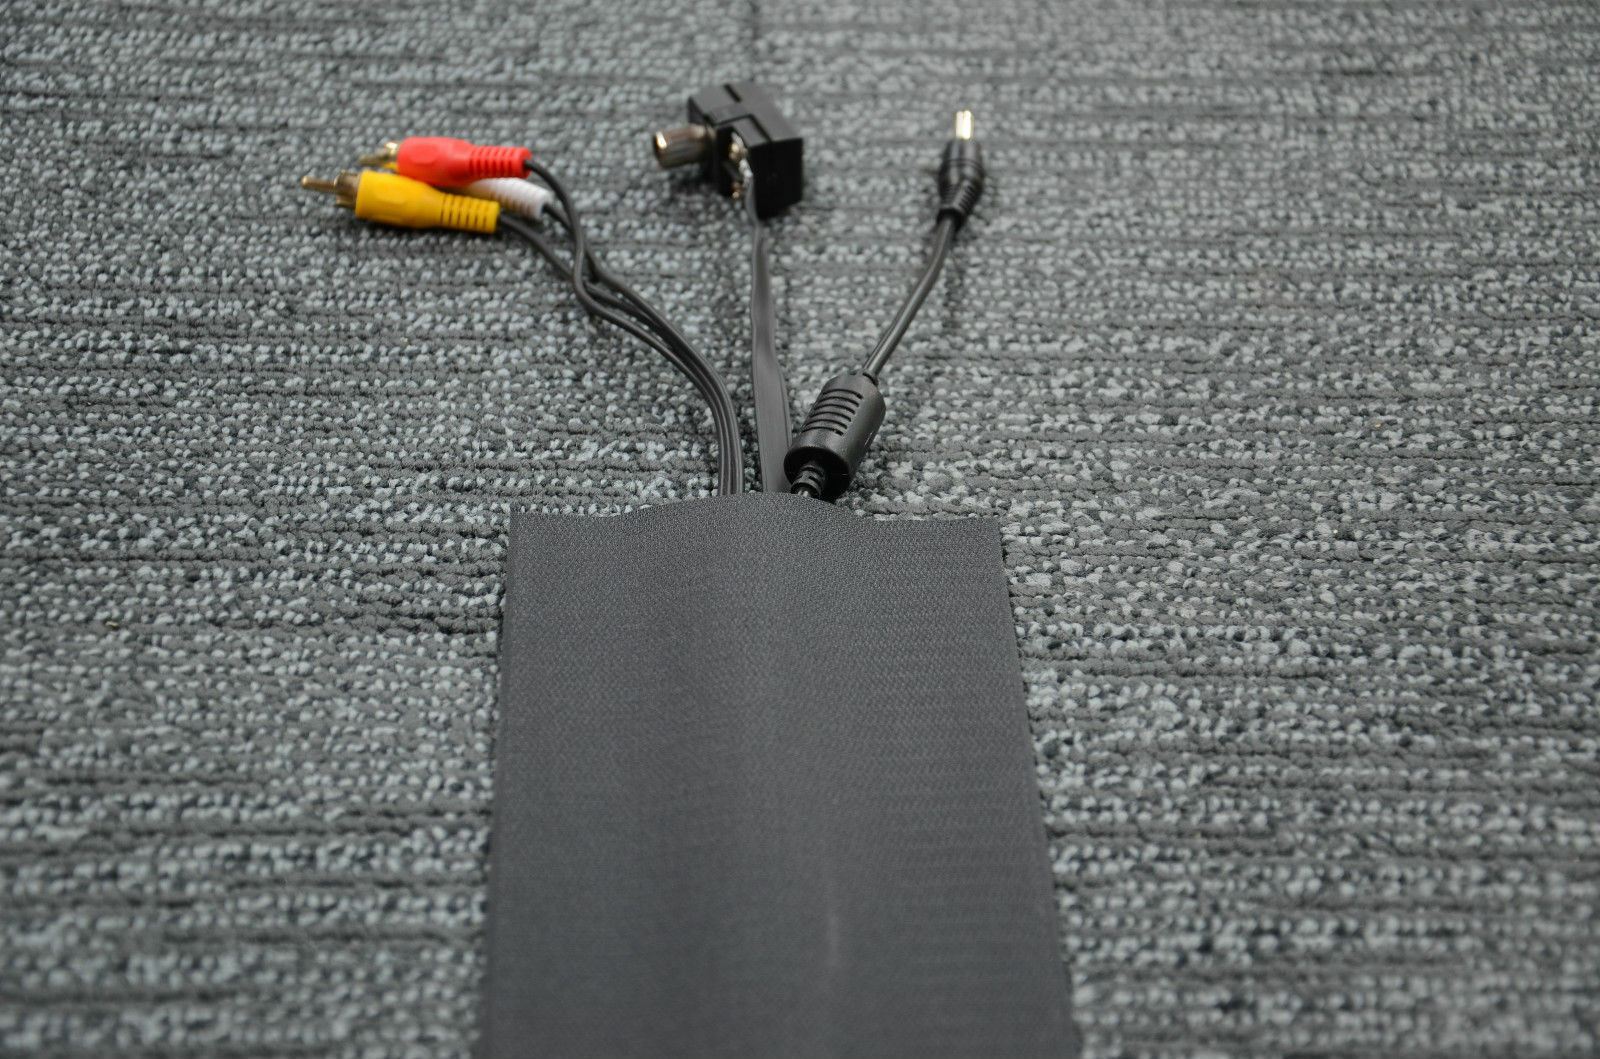 Cable Cover for Carpet - 100mm(width) x 25m(length) - Black - (C) | eBay